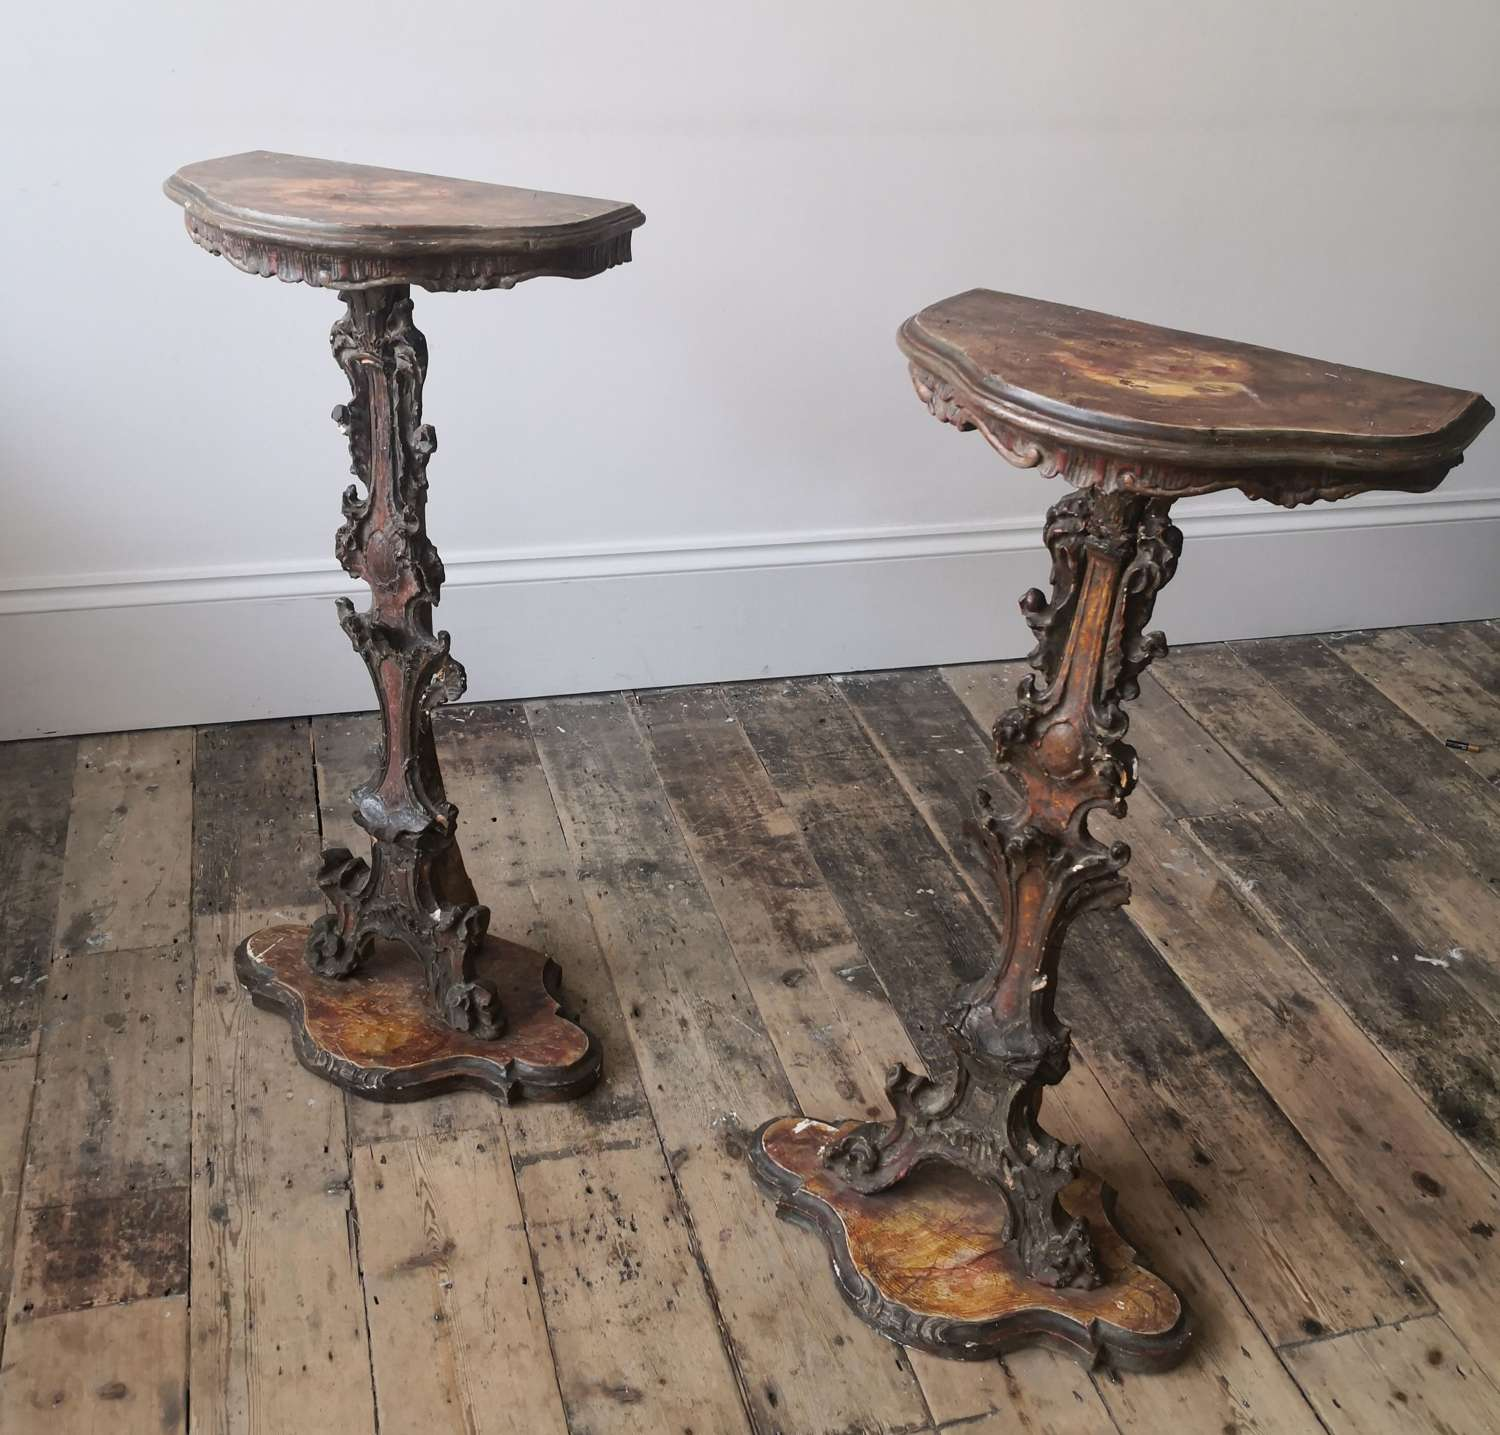 19th century Venetian tables